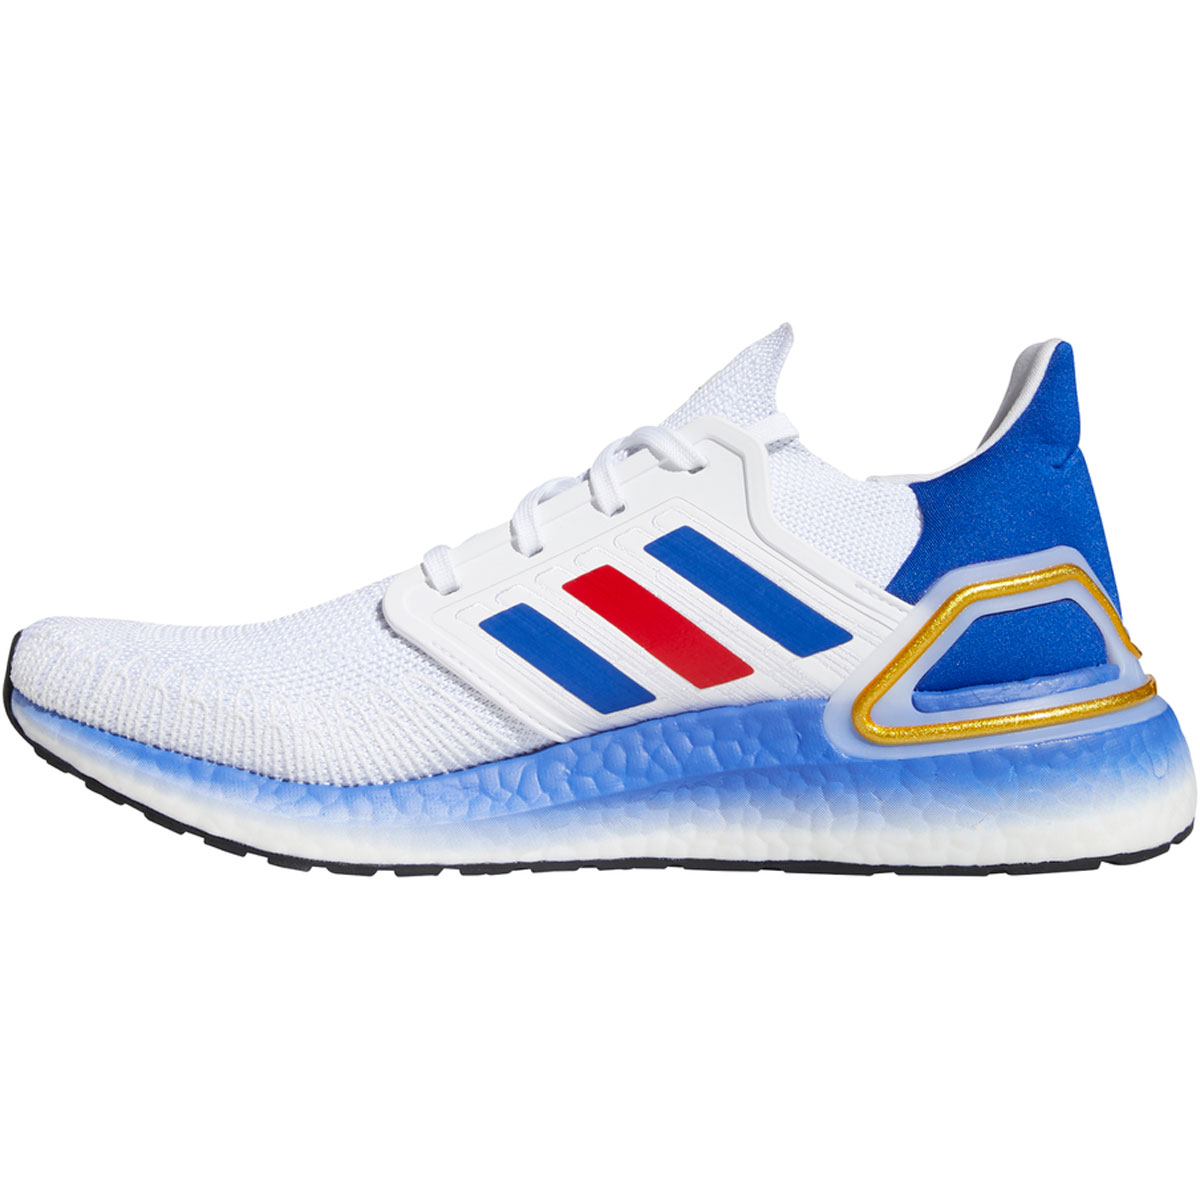 Men's Adidas Ultraboost 20 Running Shoe - Color: White/Team Usa - Size: 6.5 - Width: Regular, White/Team USA, large, image 2